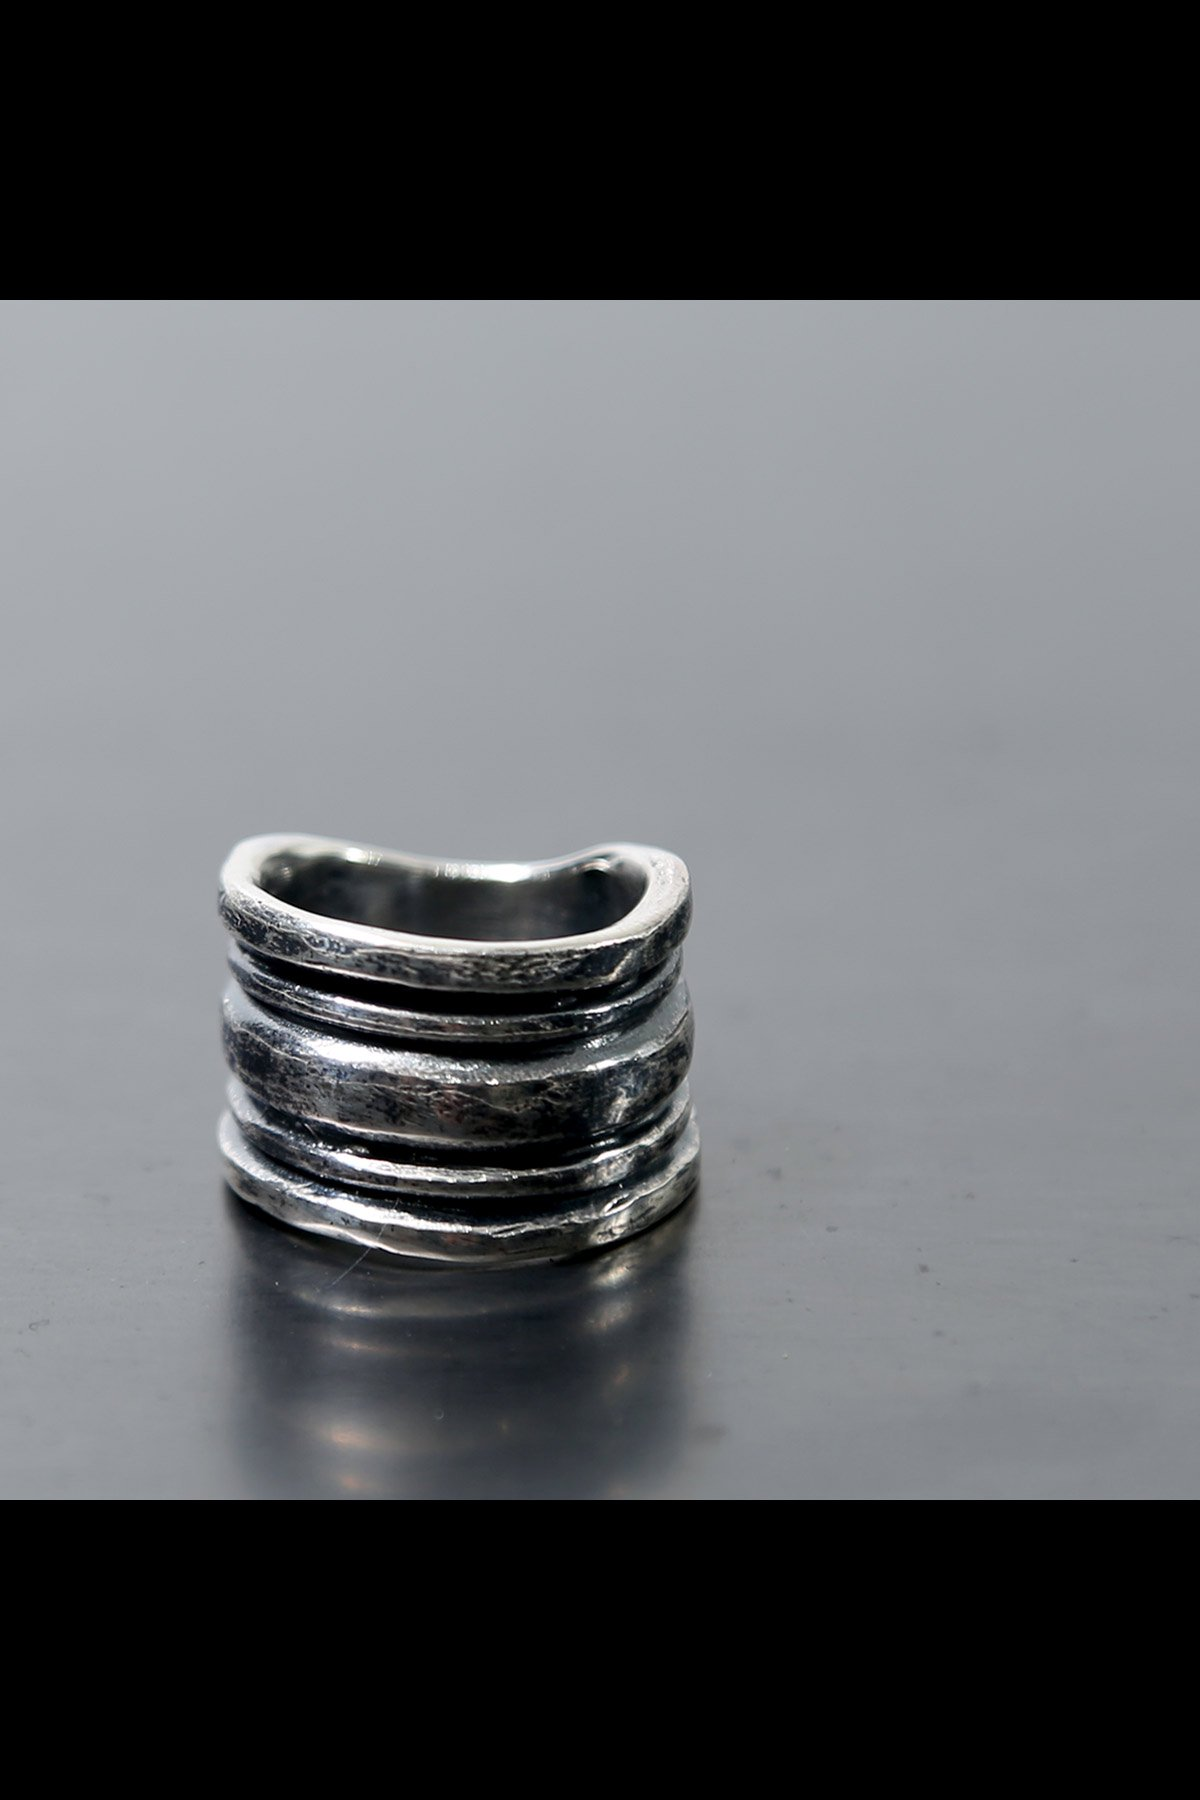 COIL RING_SPR_M